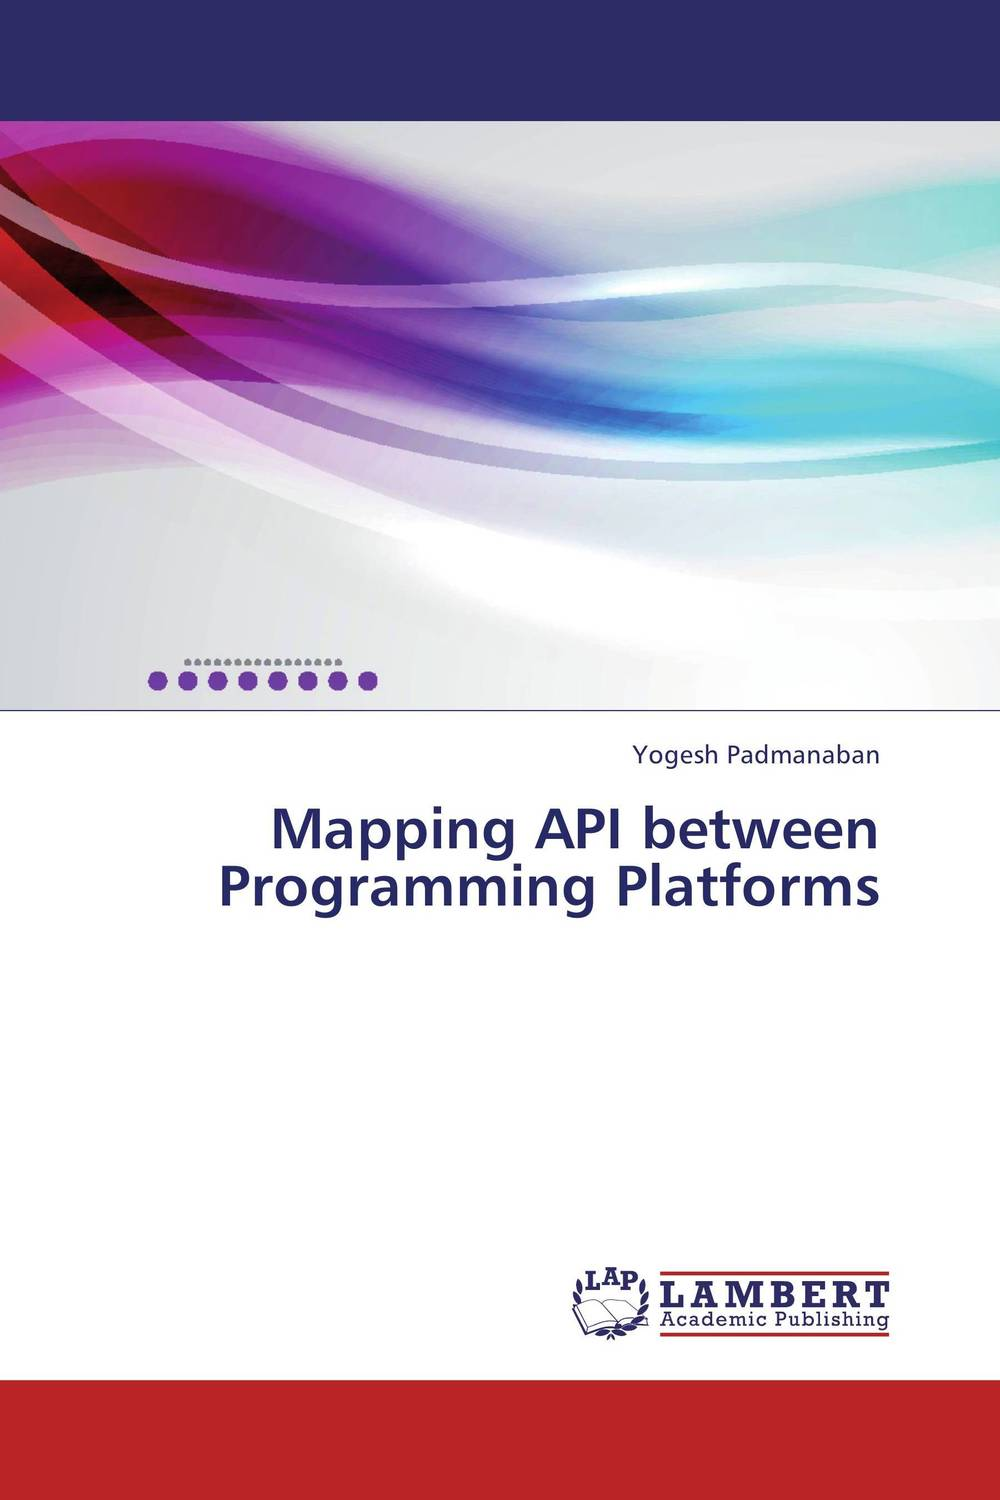 Mapping API between Programming Platforms bookcase super soft non slip bath door mat machine washable quickly drying